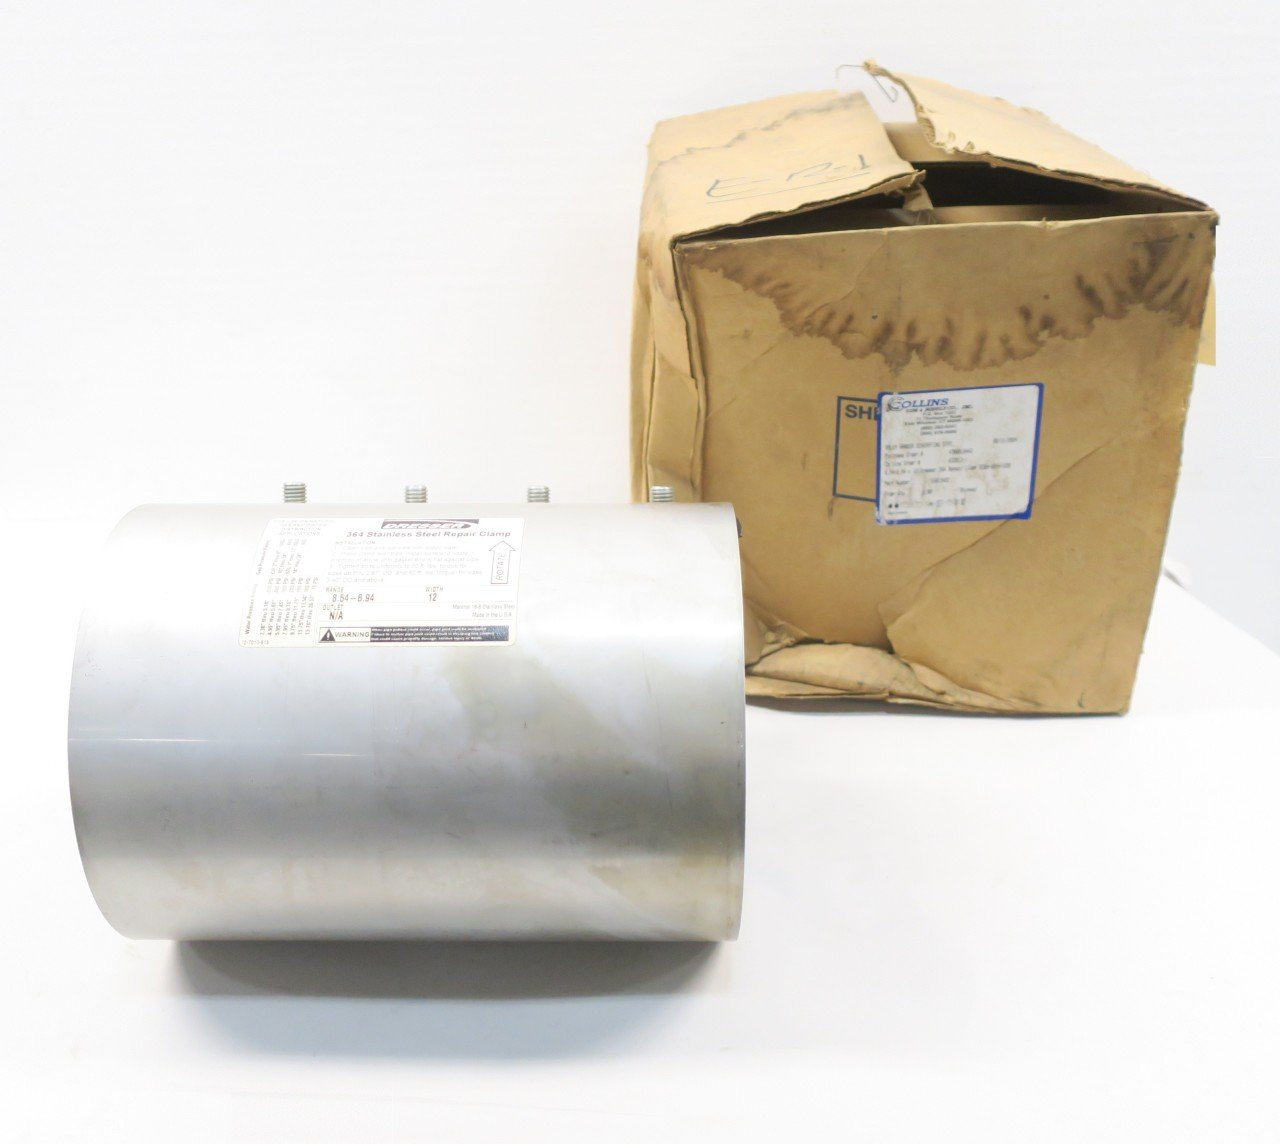 NEW DRESSER 8364-0894-220 8.54-8.94IN X 12IN STAINLESS PIPE REPAIR CLAMP D585120